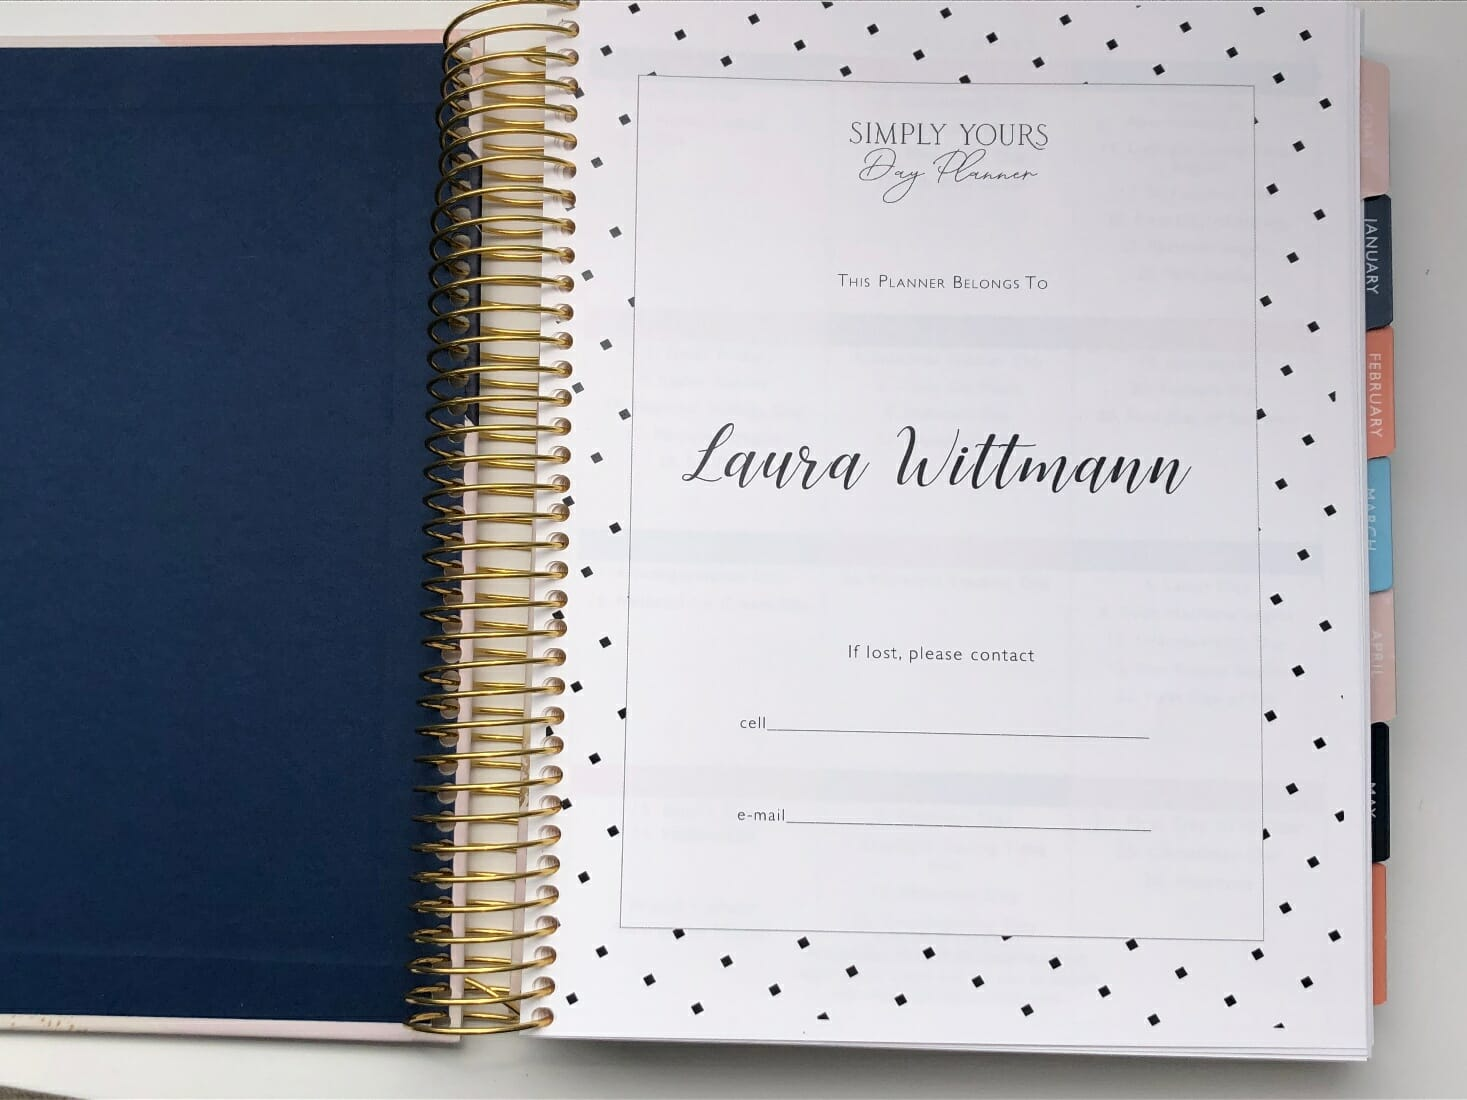 Simply Yours Day Planner Personalized